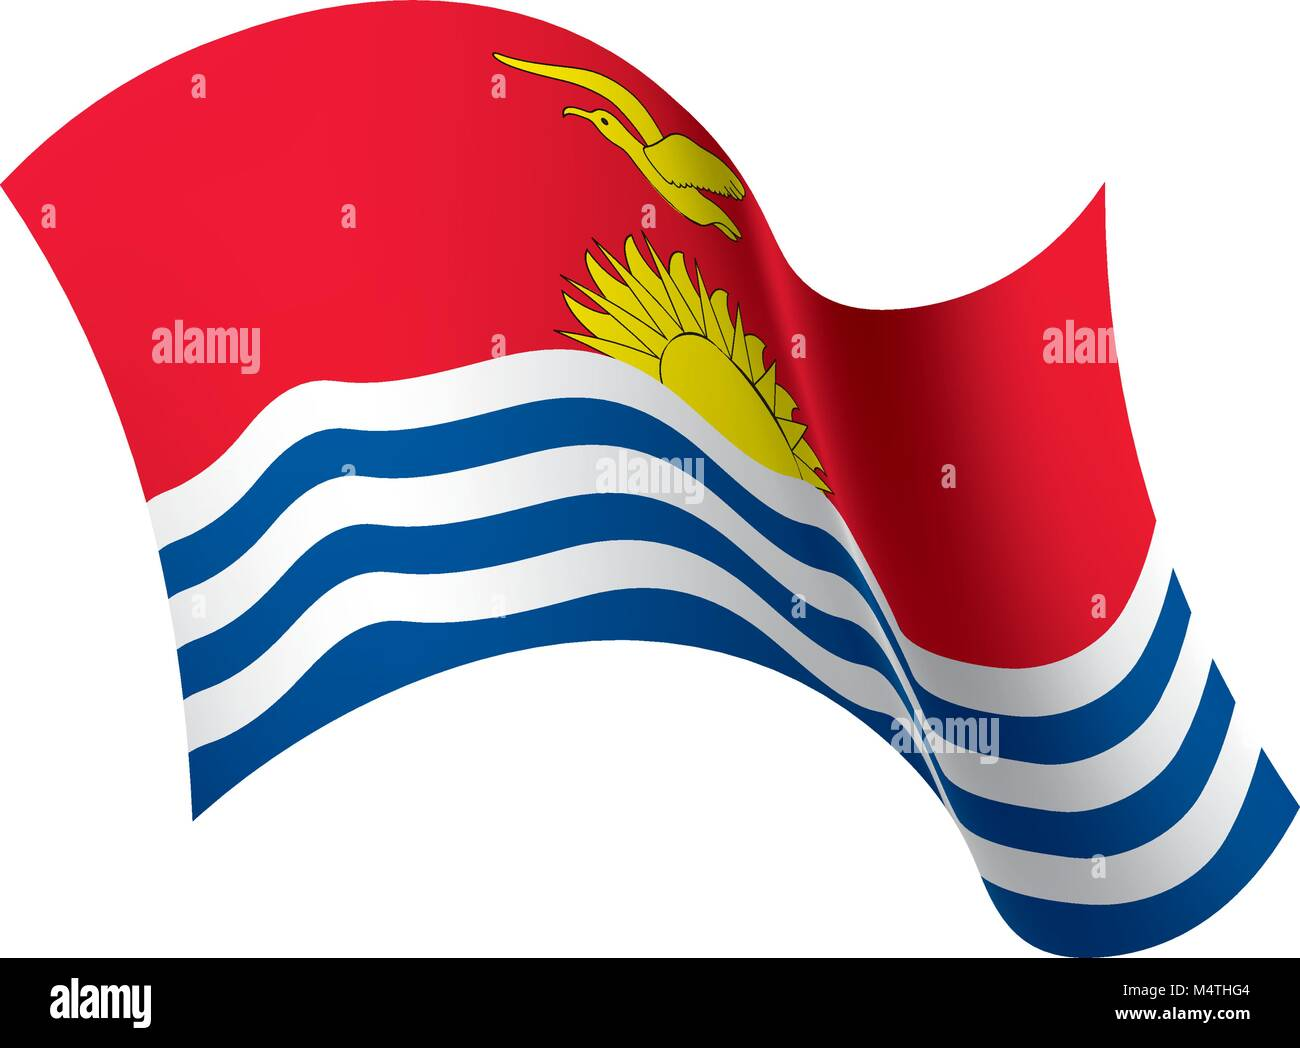 Kiribati flag, vector illustration - Stock Image